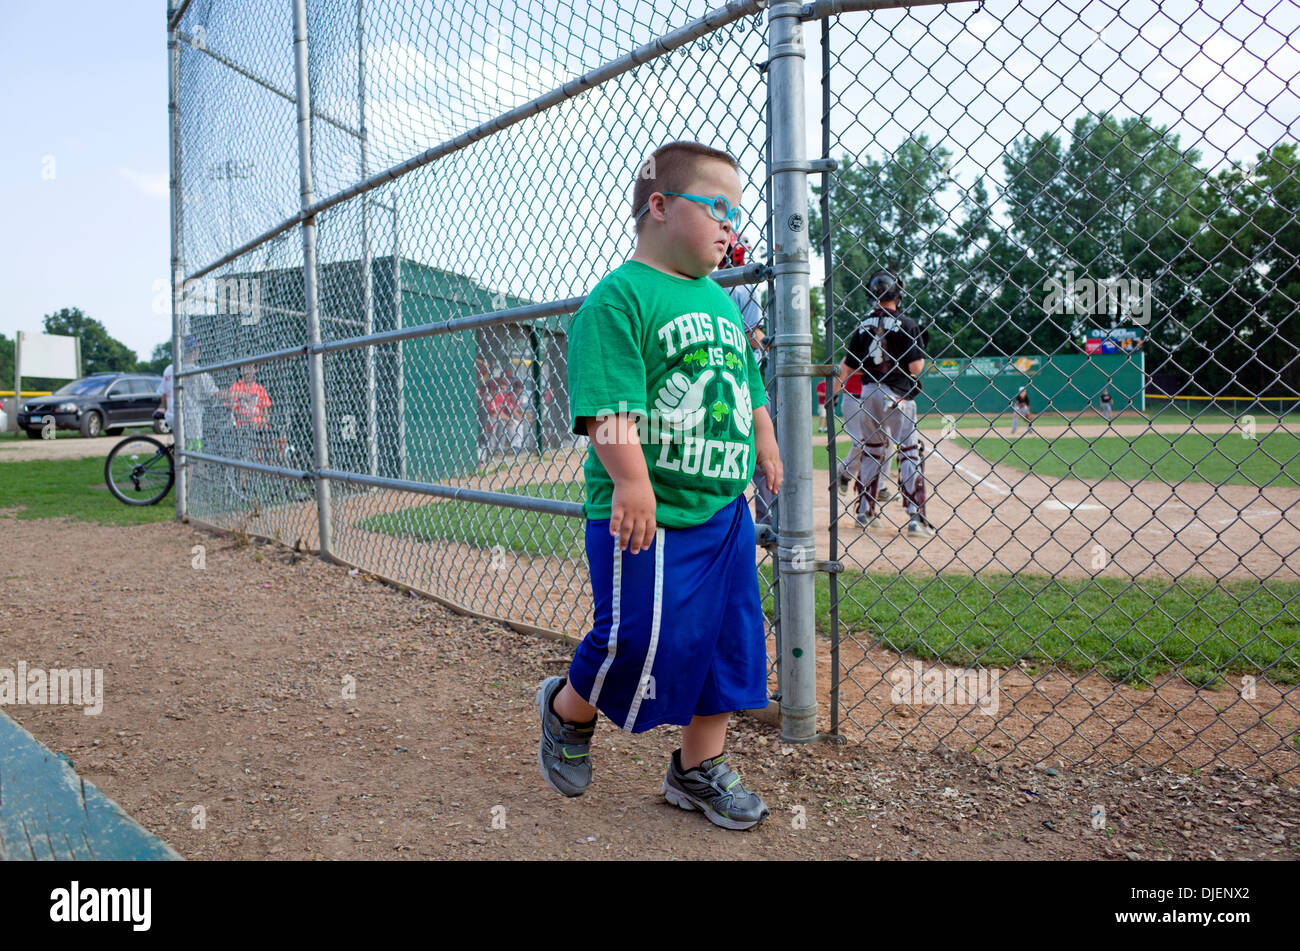 Young Down's Syndrome boy wearing his This Guy is Lucky Irish t-shirt at the ball game. St Paul Minnesota MN USA - Stock Image